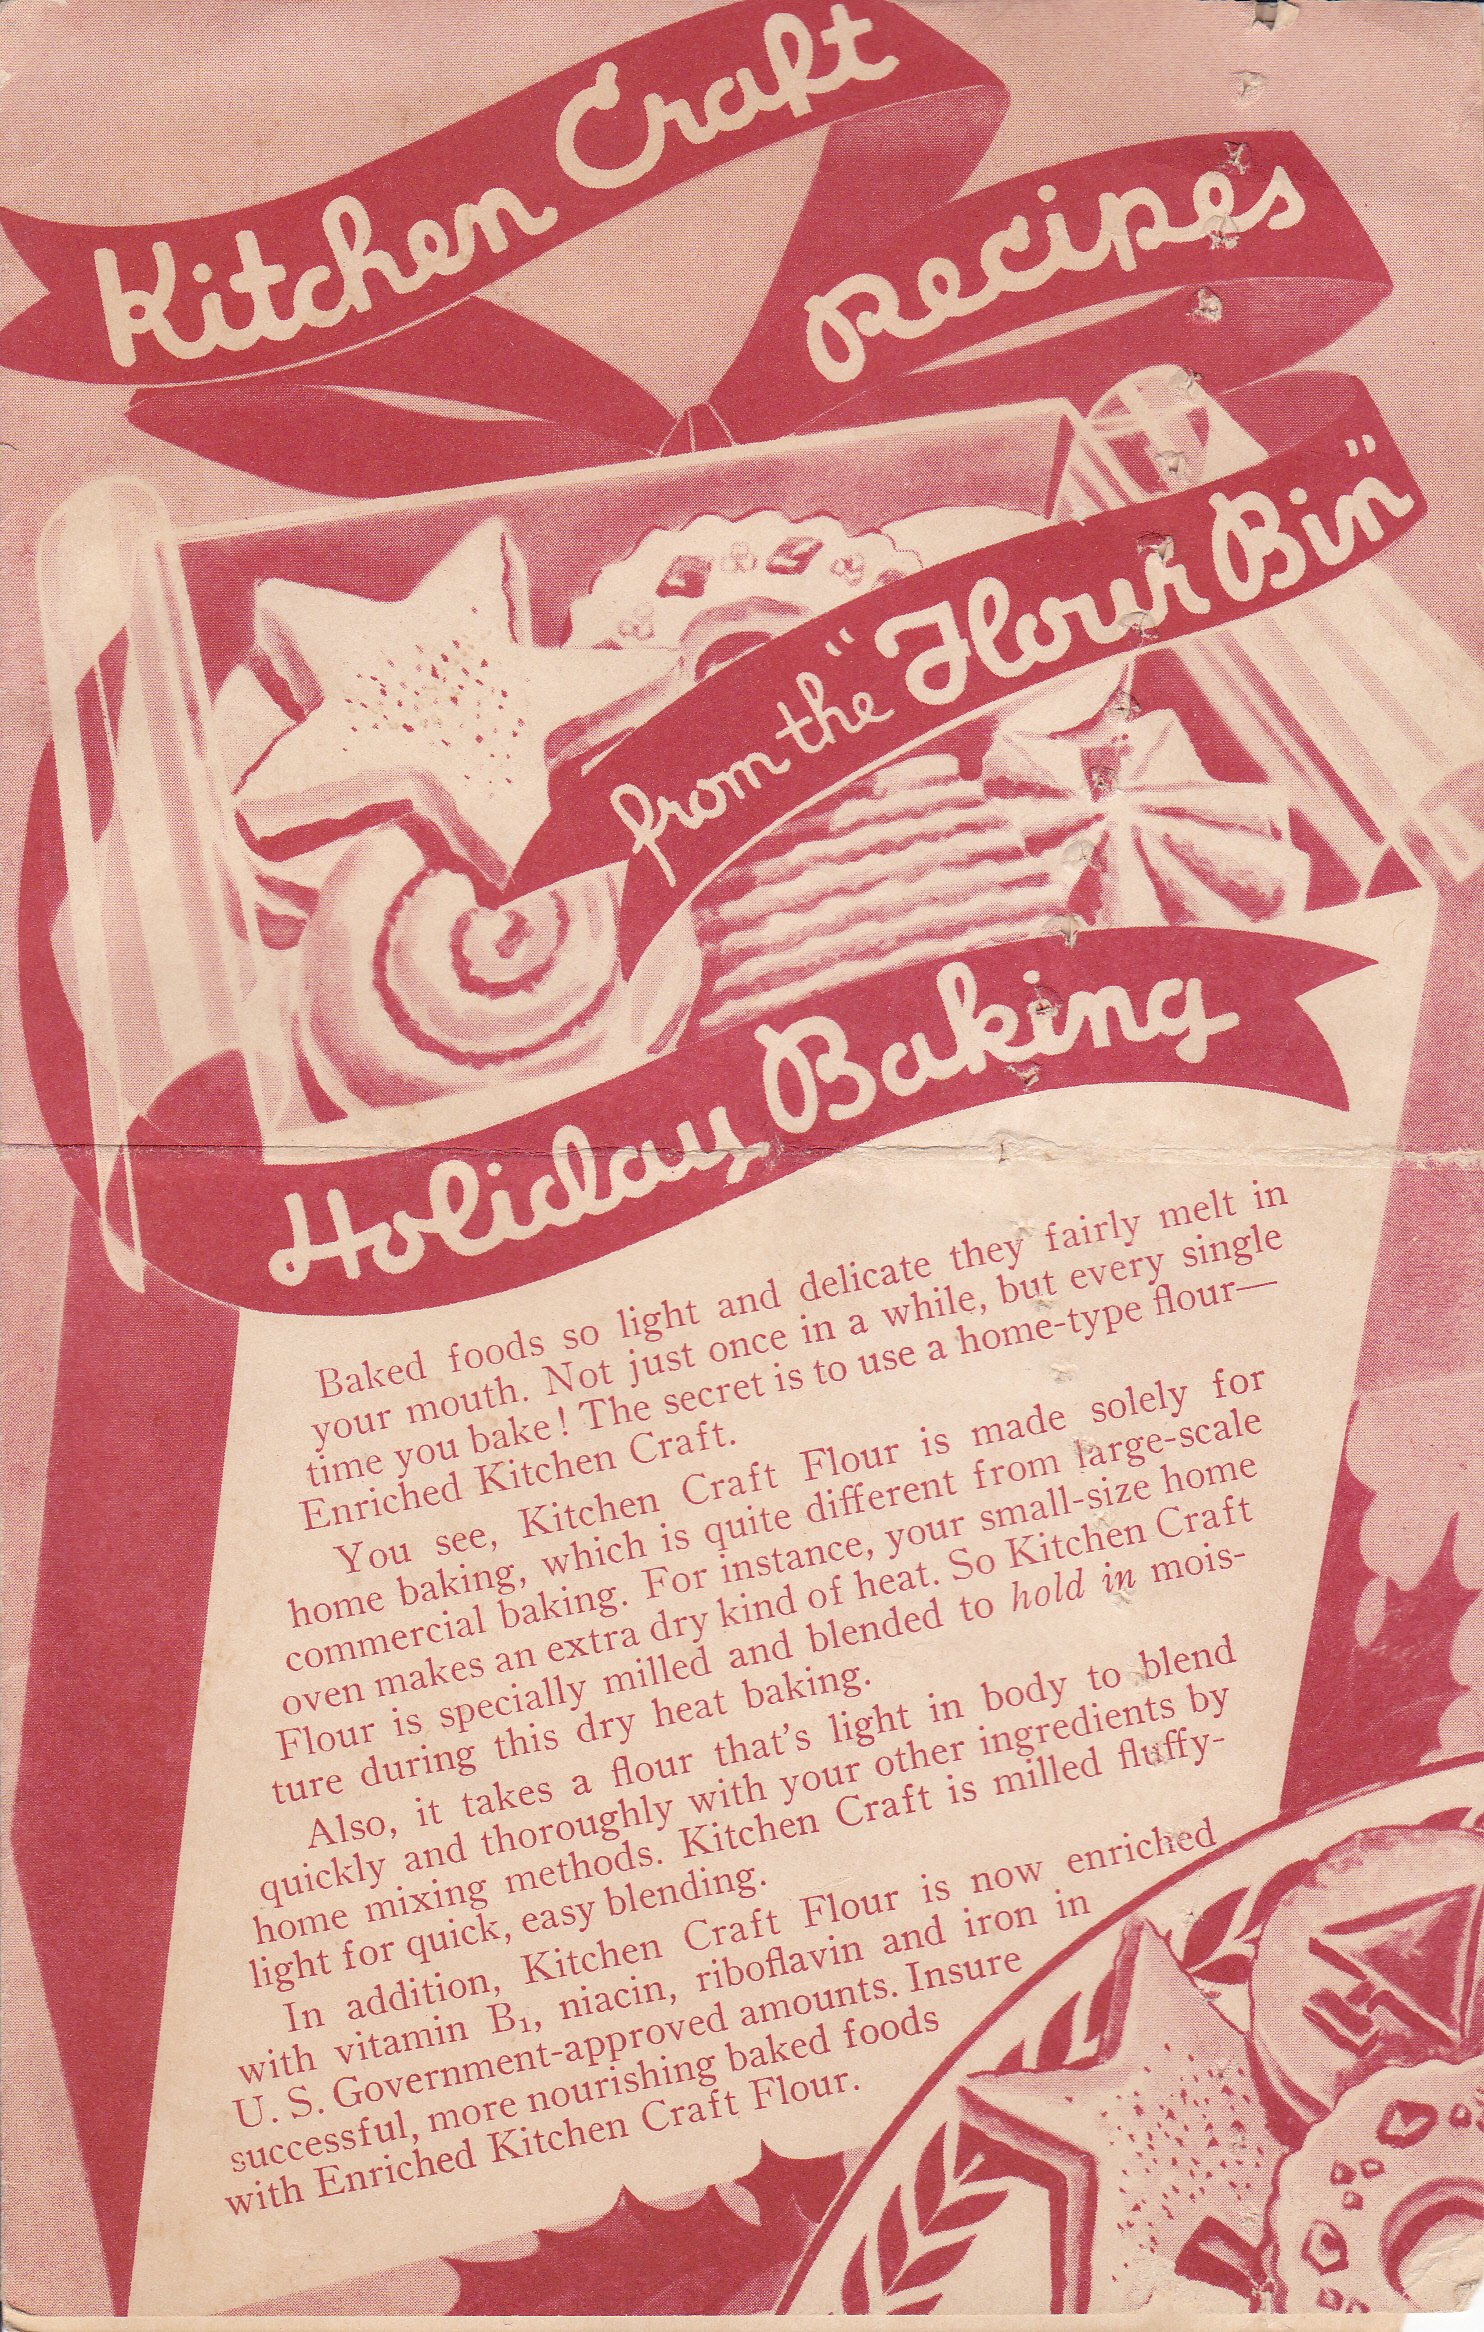 Kitchen Craft Recipes From the Flour Bin, Holiday Baking ...